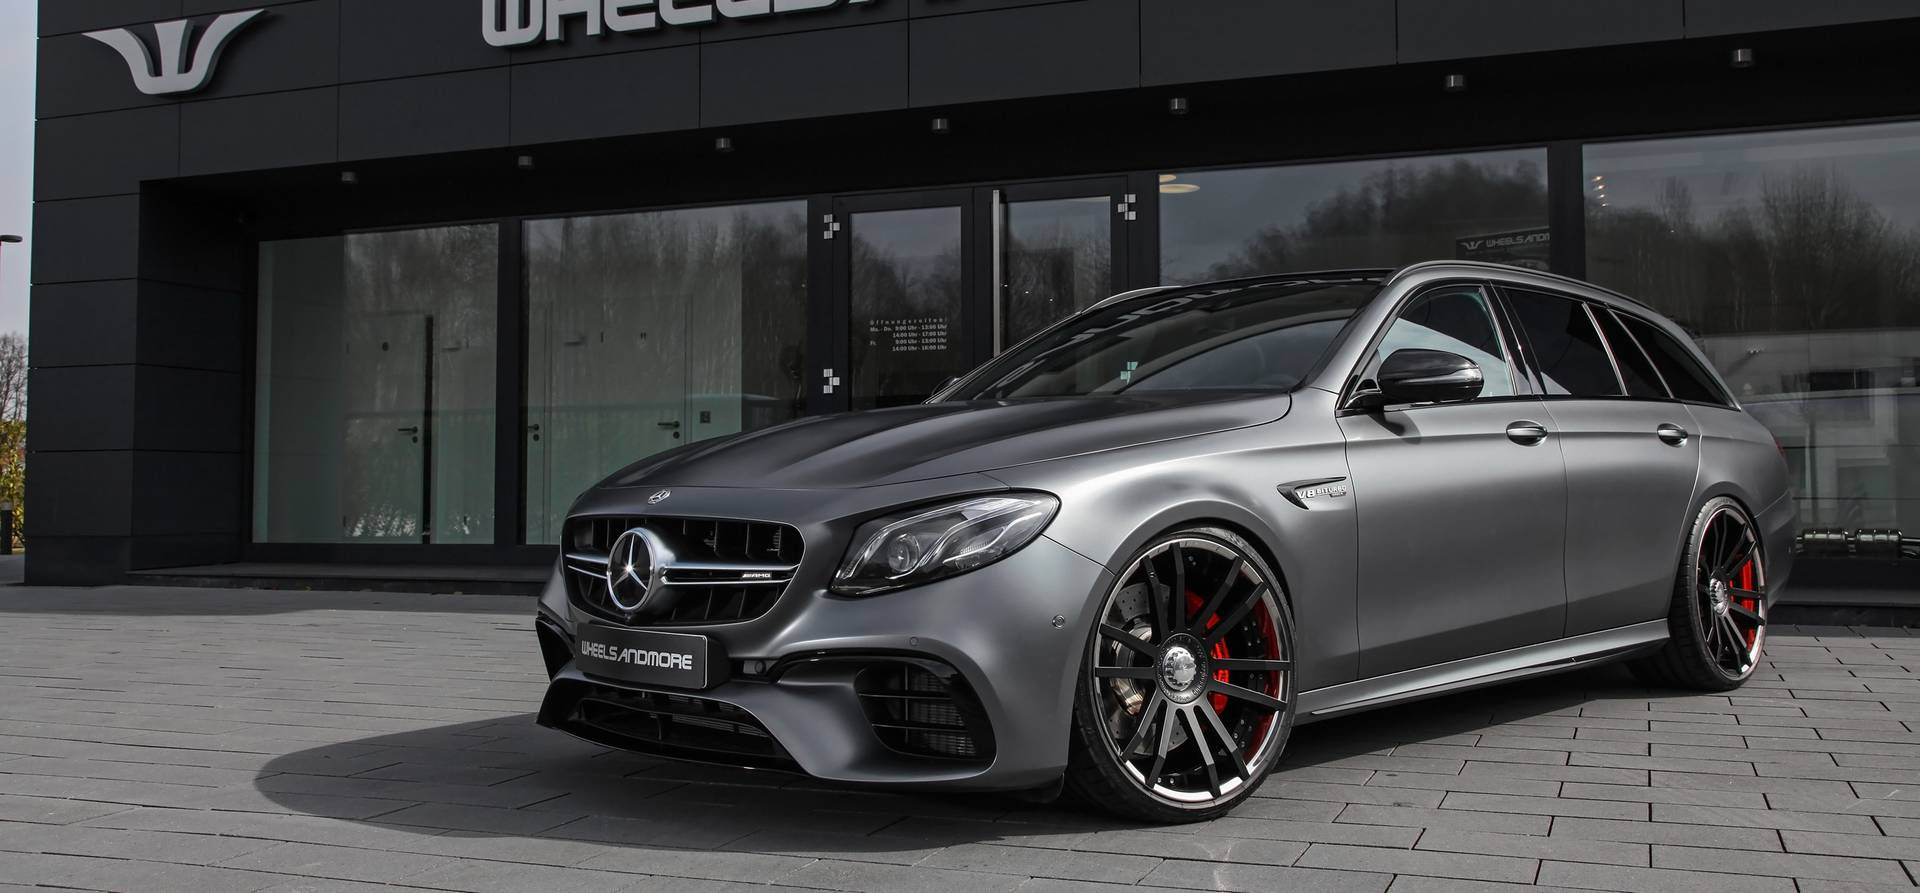 712hp for the Mercedes-AMG E63 S Estate by Wheelsandmore ...